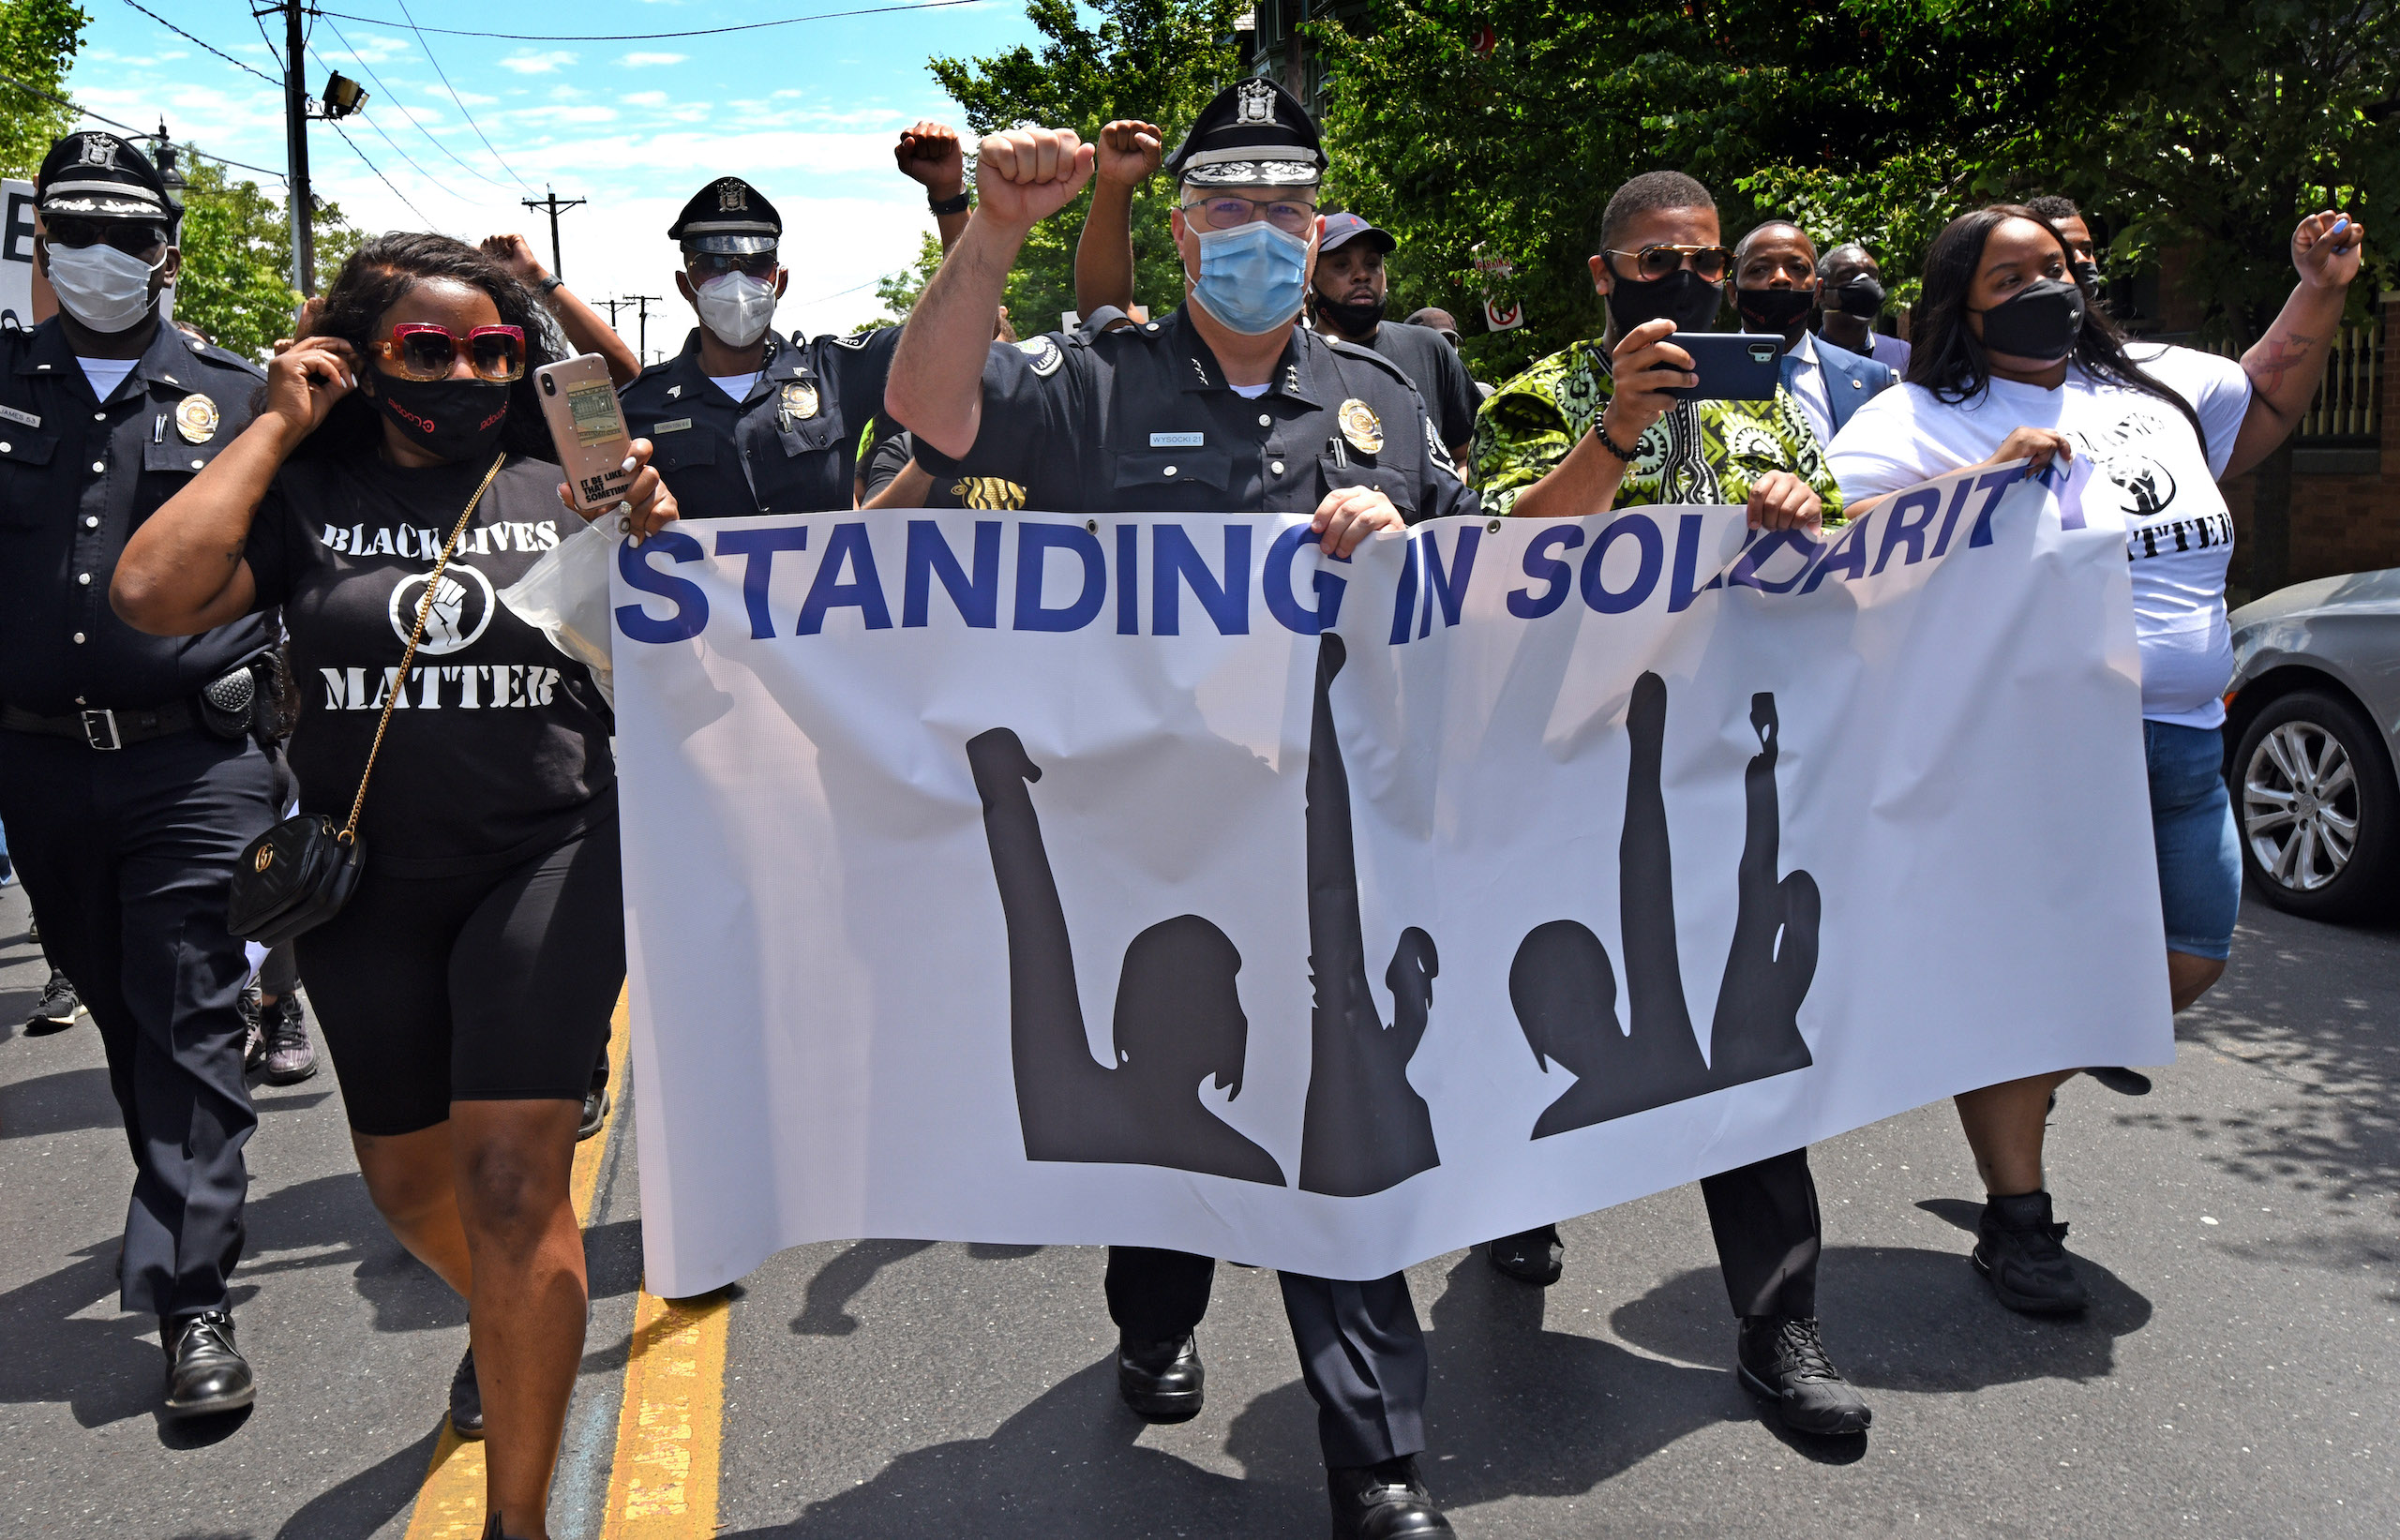 Camden County Police Chief Joe Wysocki raises a fist while marching with Camden residents